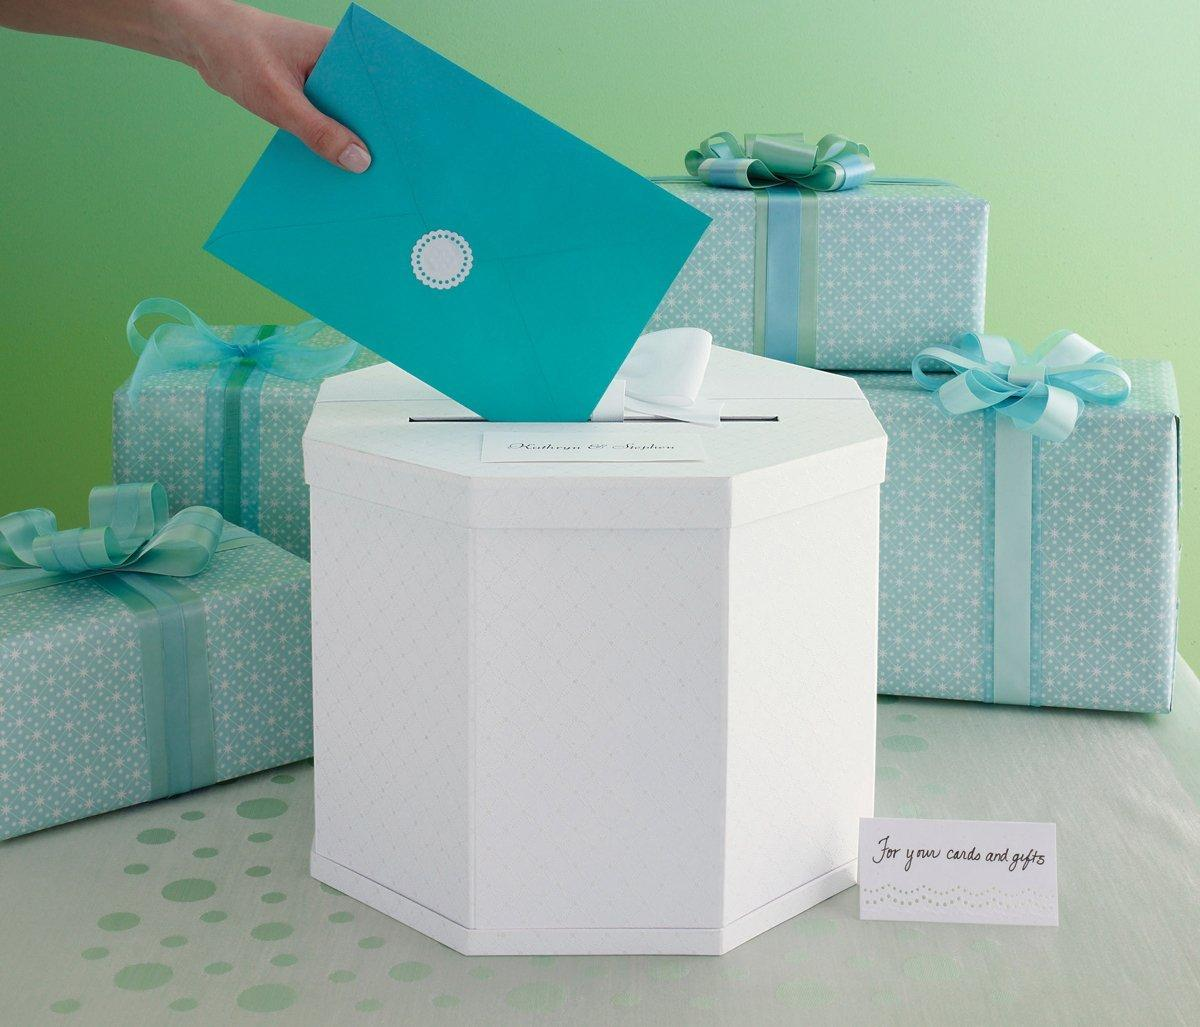 Wedding Gift Card Amazon : Amazon.com: Martha Stewart Gift Card Box, White Eyelet: Arts, Crafts ...